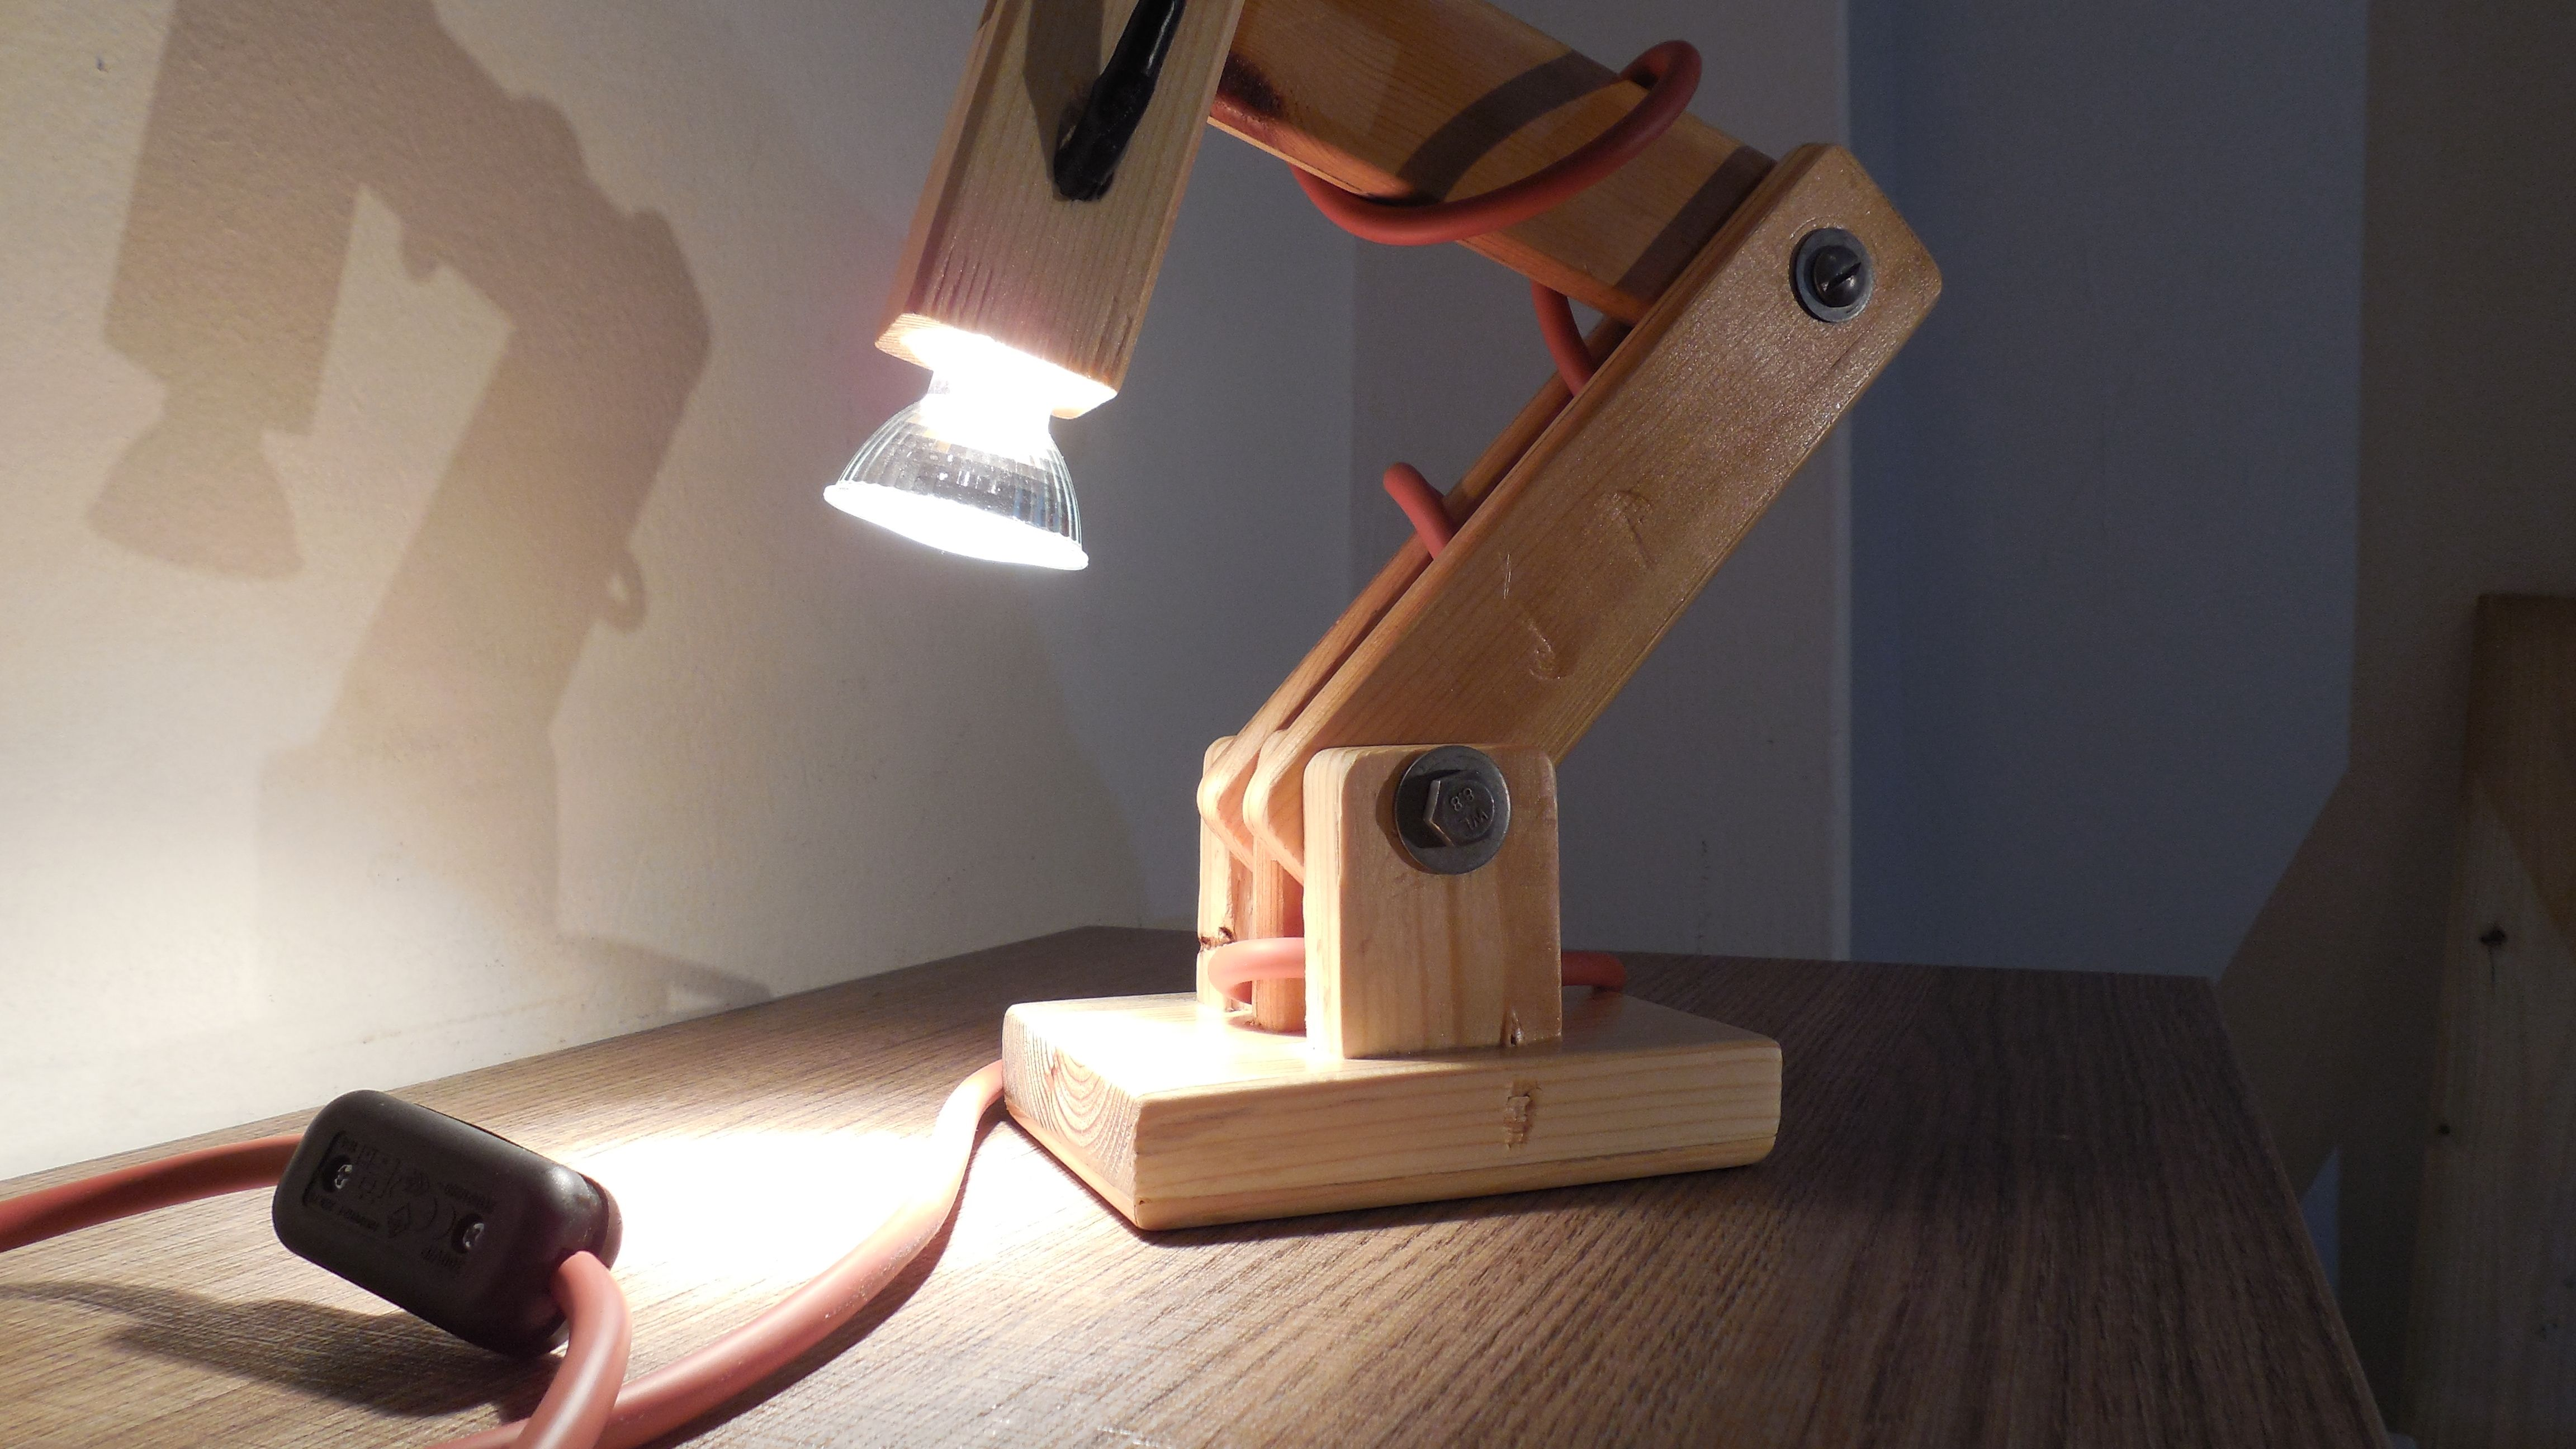 Diy Articulated Wooden Desk Lamp With Gu10 Bulb Diy Diylamp Desklamp Diydesklamp Lamp Woodenlamp Woodendeskl Diy Wooden Desk Wooden Desk Lamp Desk Lamp